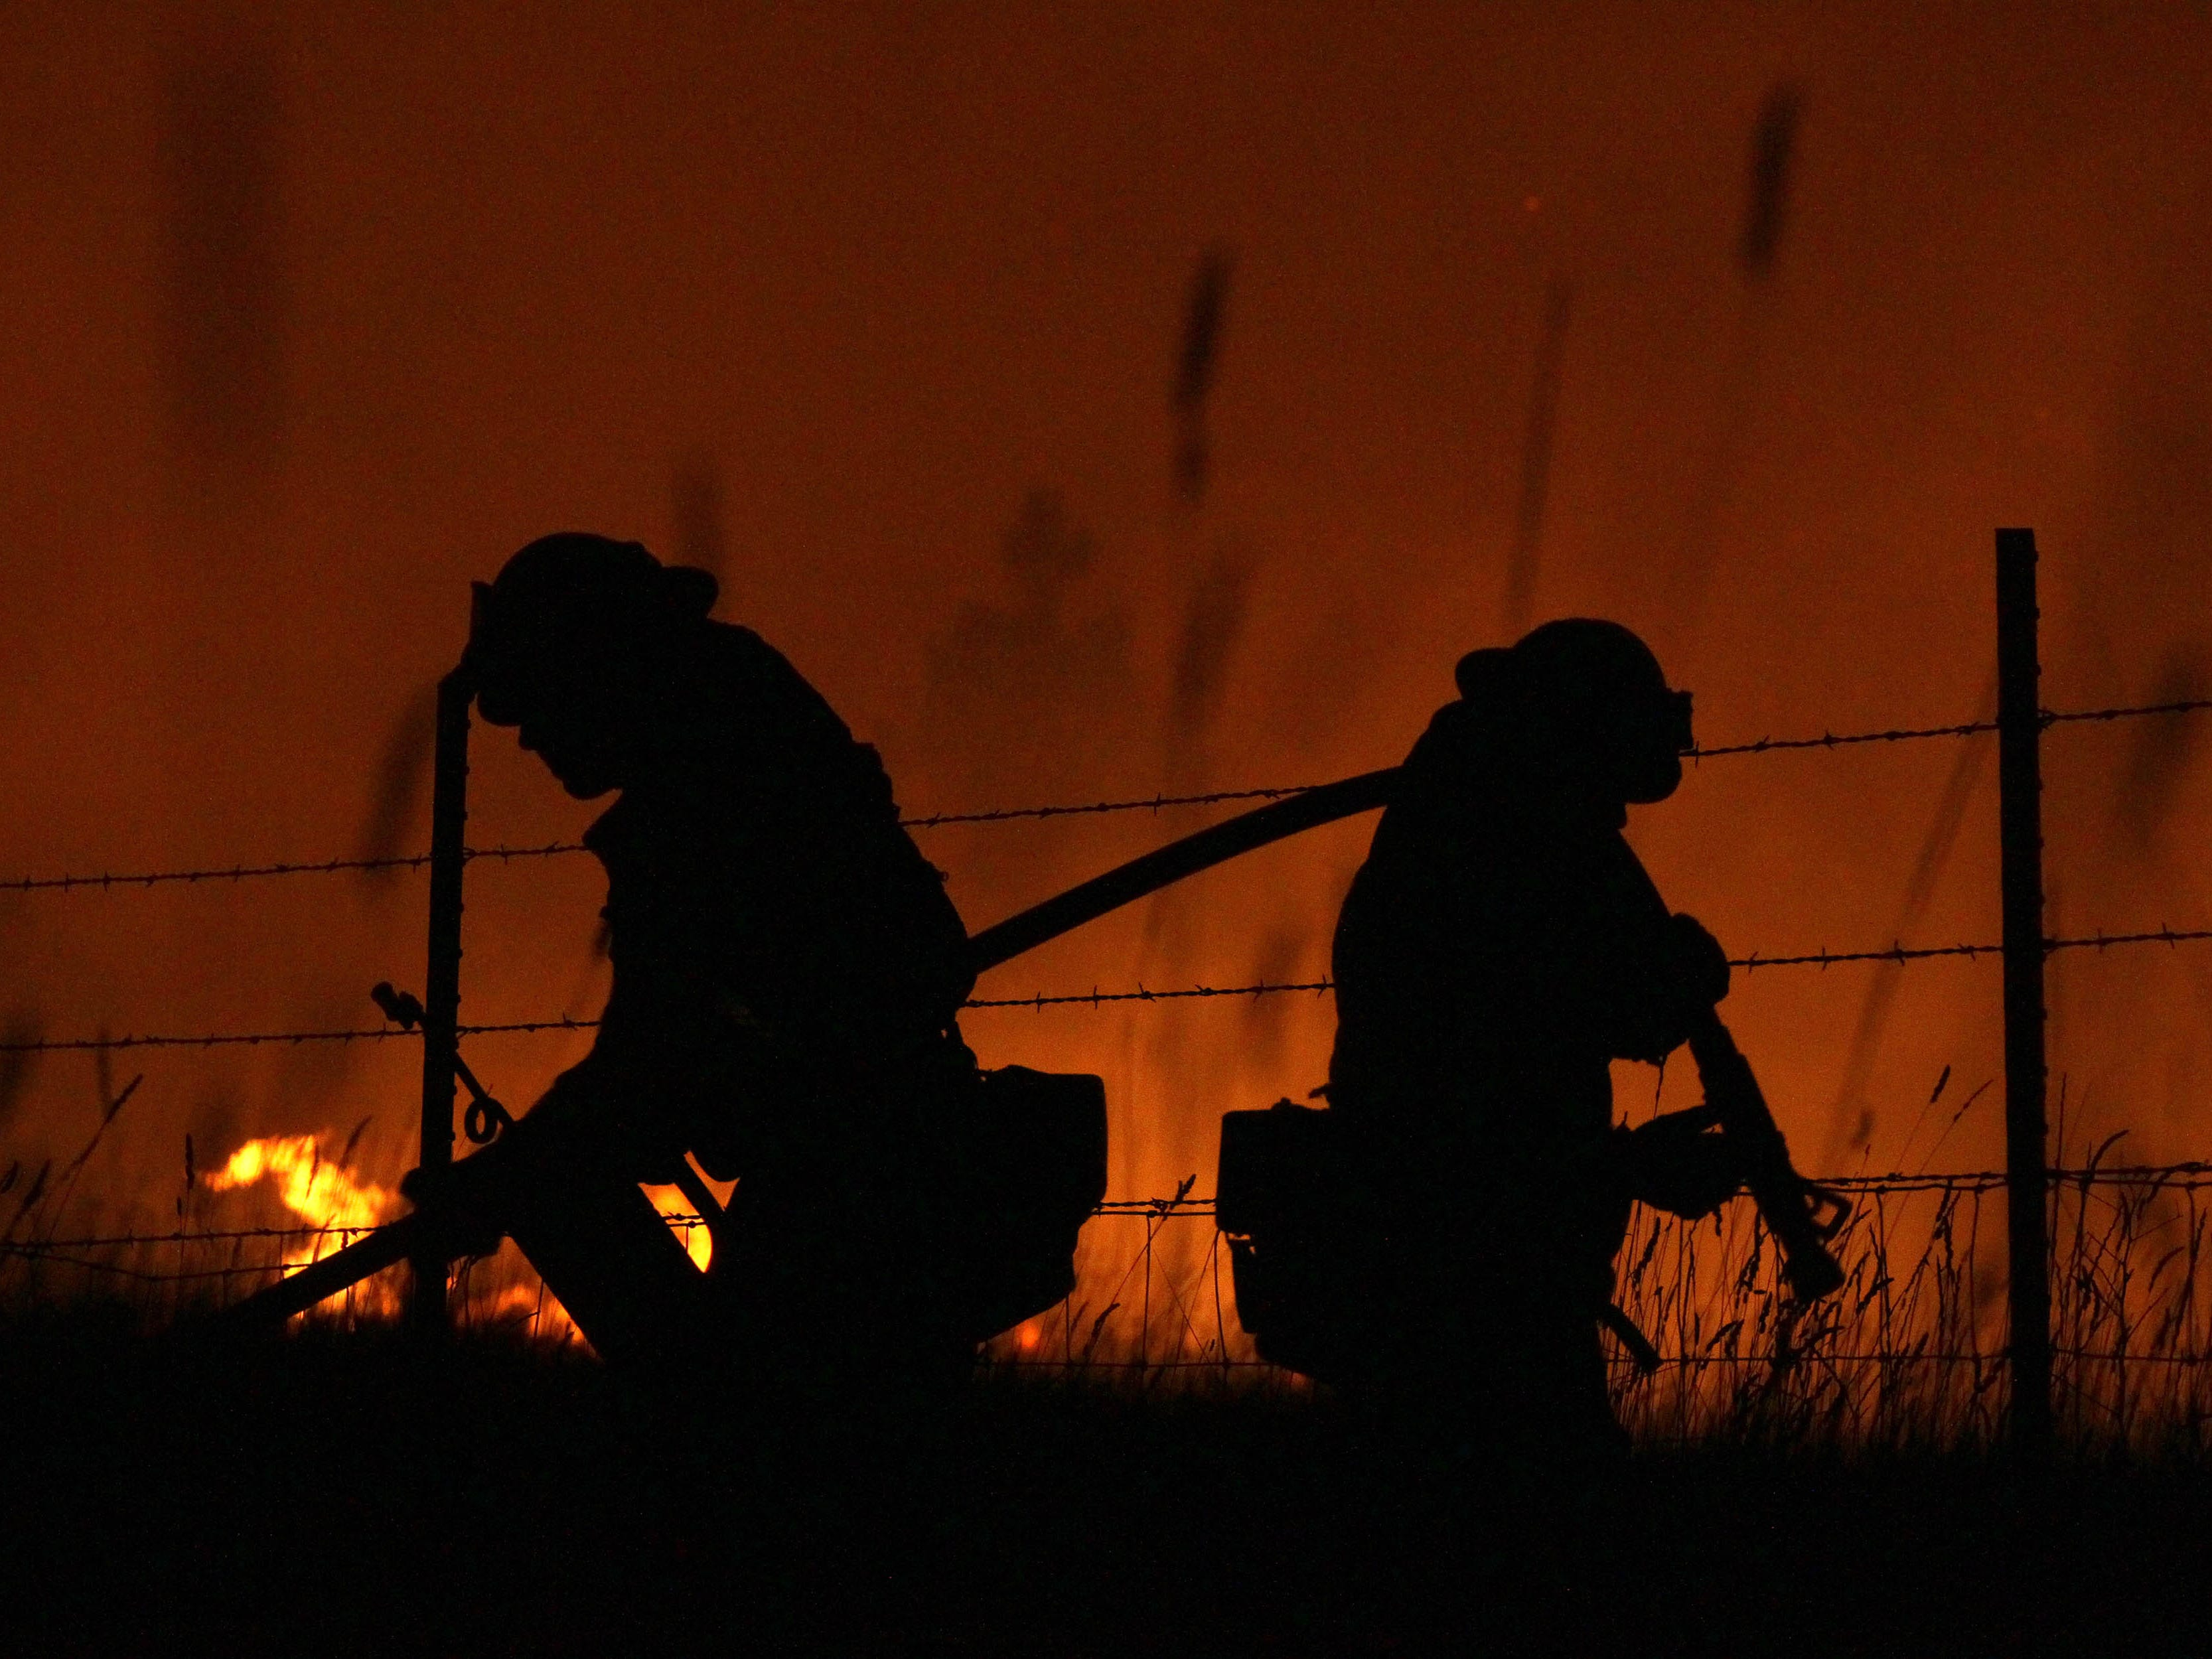 Firefighters keep standing guard along I-5 north of the Pollard Flat exit as the Delta Fire flares up in the background on Friday evening, Sept. 7, 2018. (Hung T. Vu/Special to the Record Searchlight)